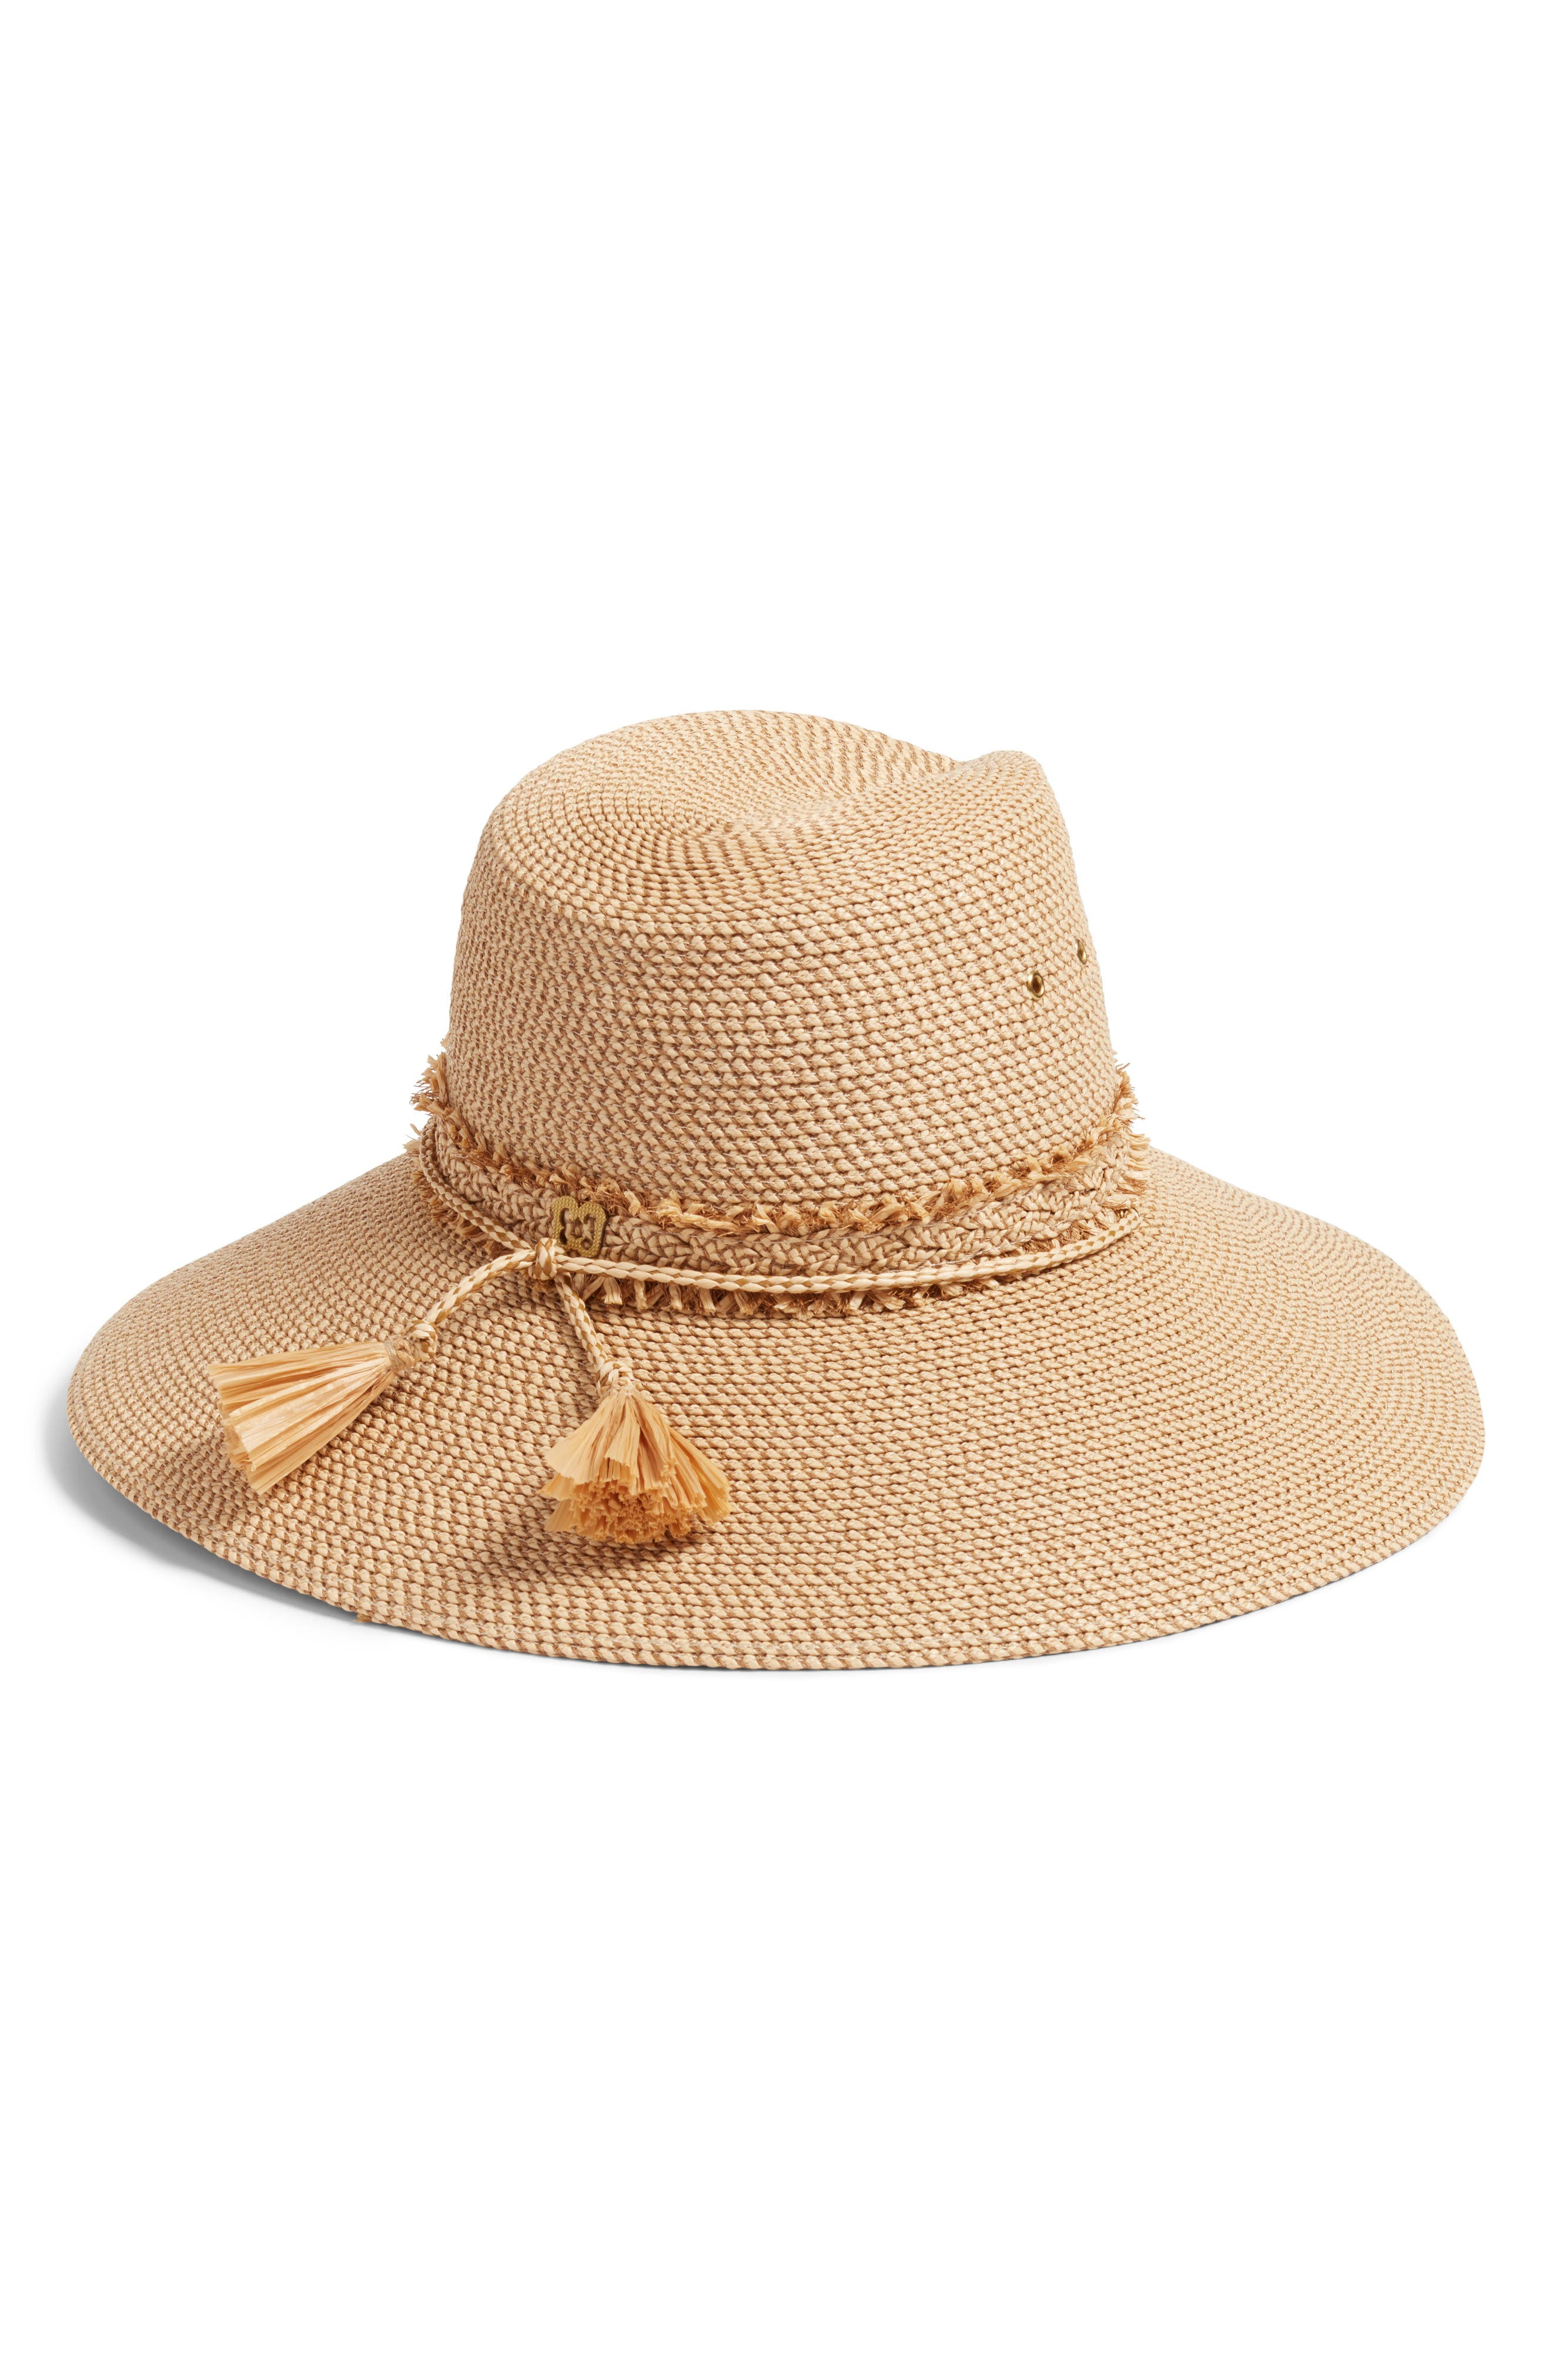 Voyager Squishee<sup>®</sup> Sun Hat,                             Alternate thumbnail 2, color,                             Peanut